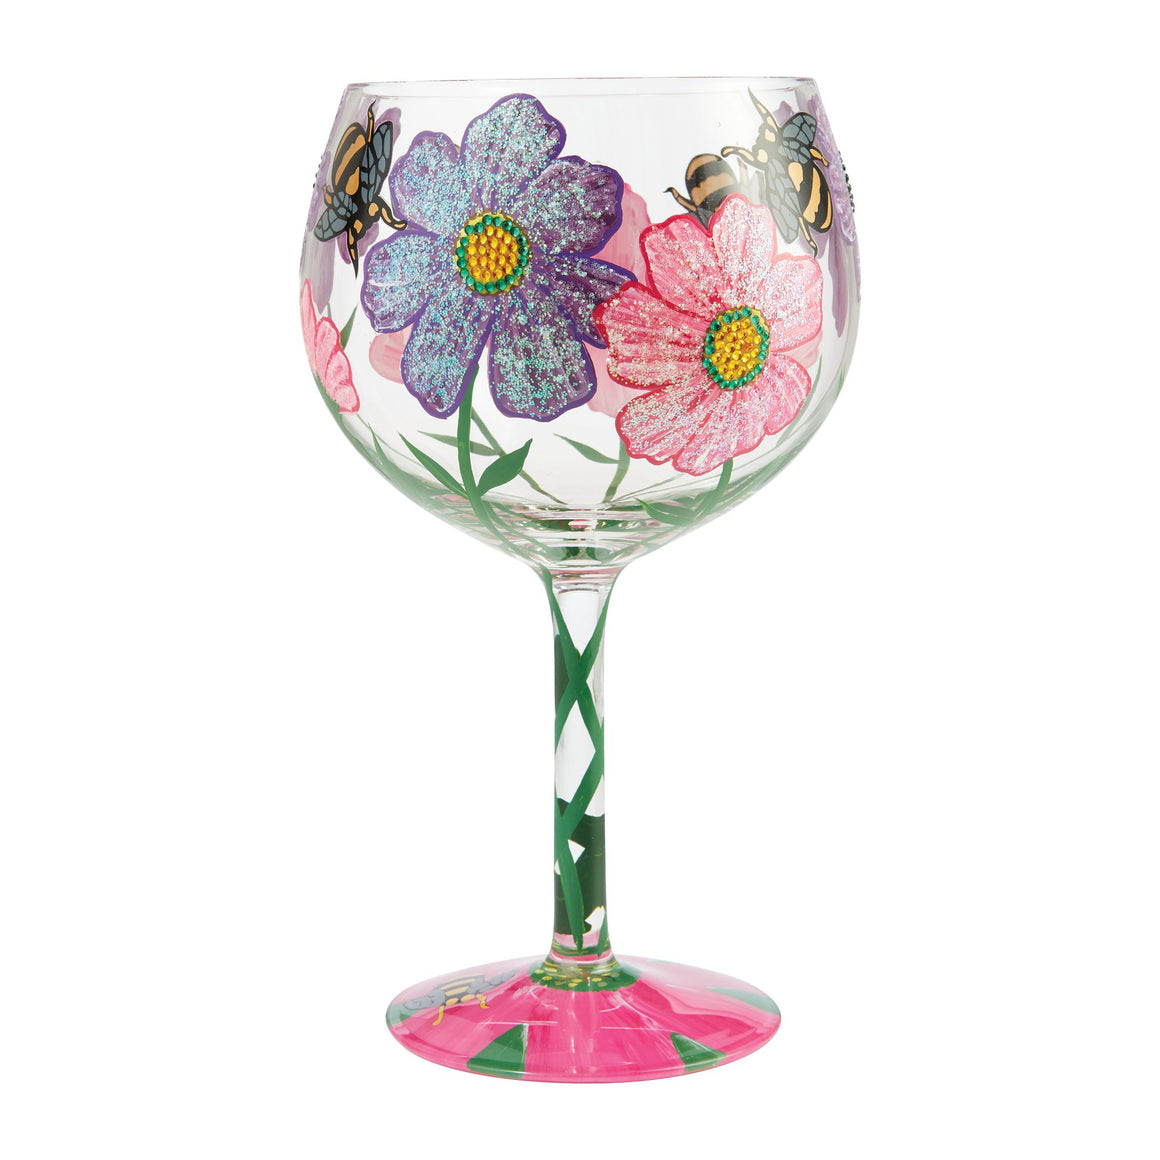 Lolita My Drinking Garden Gin Glass